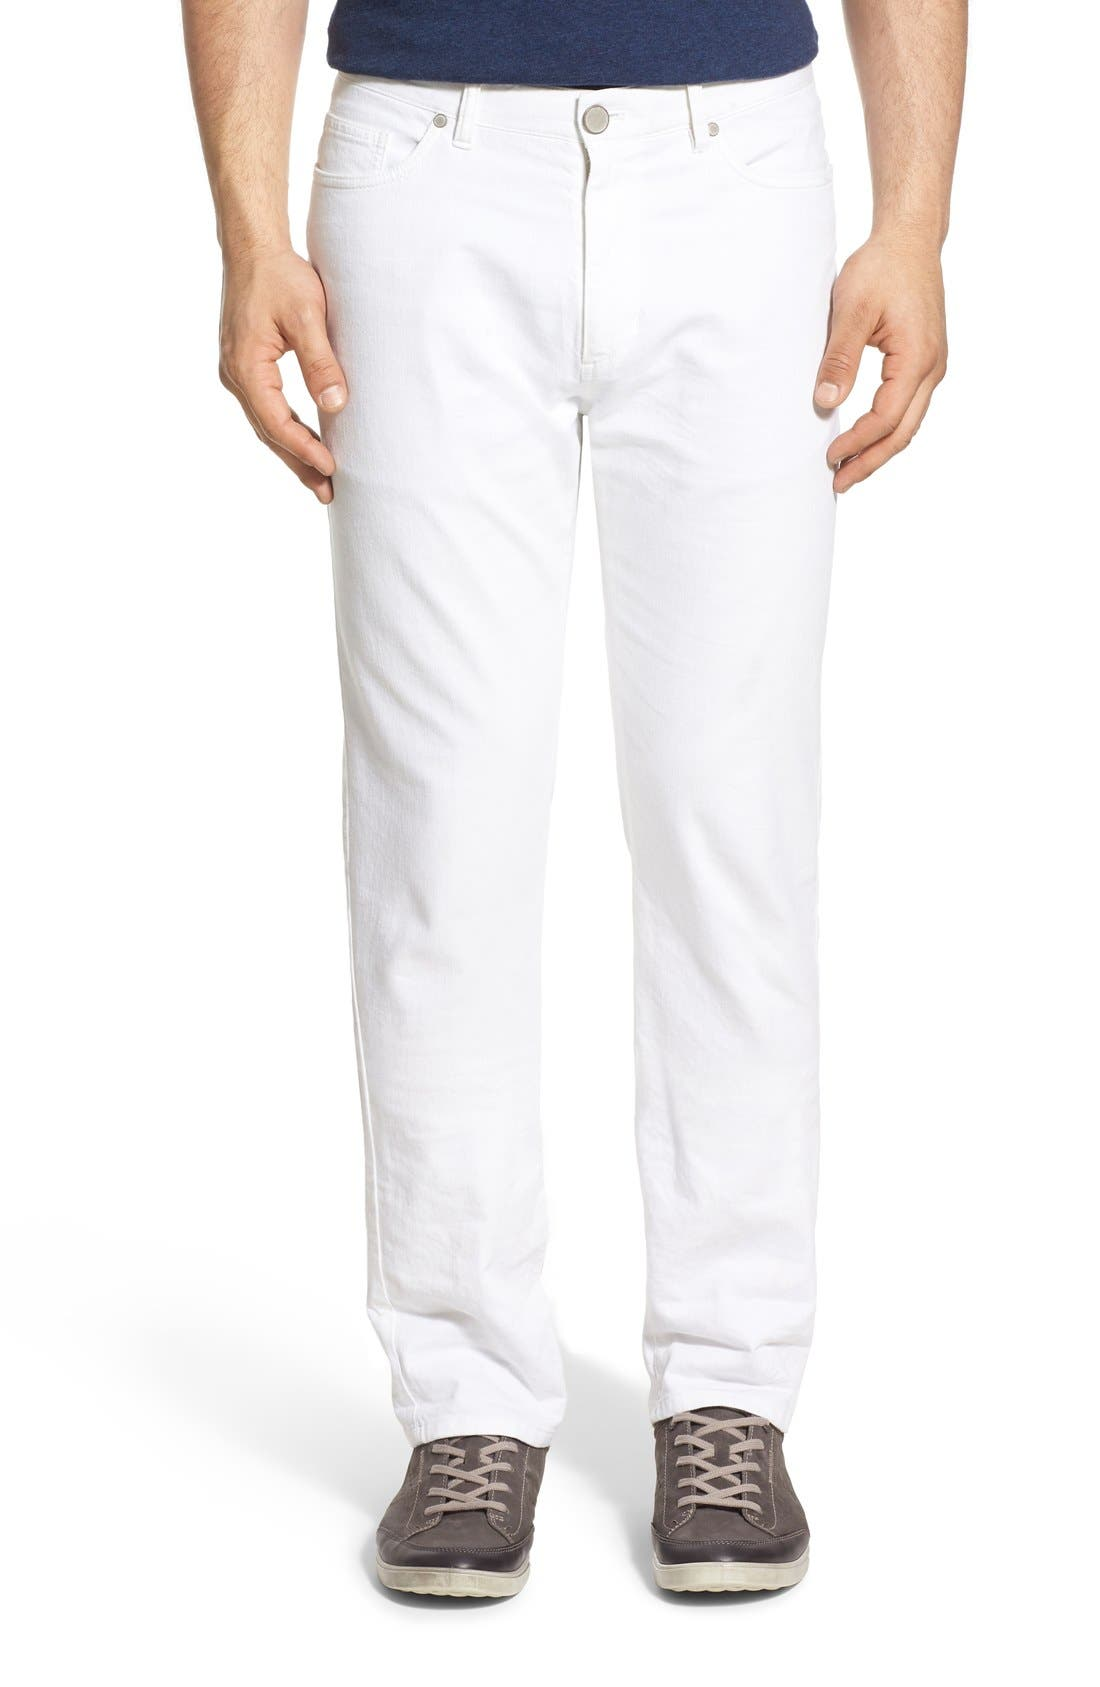 Relaxed Fit Whitewash Denim Jeans,                             Main thumbnail 1, color,                             100